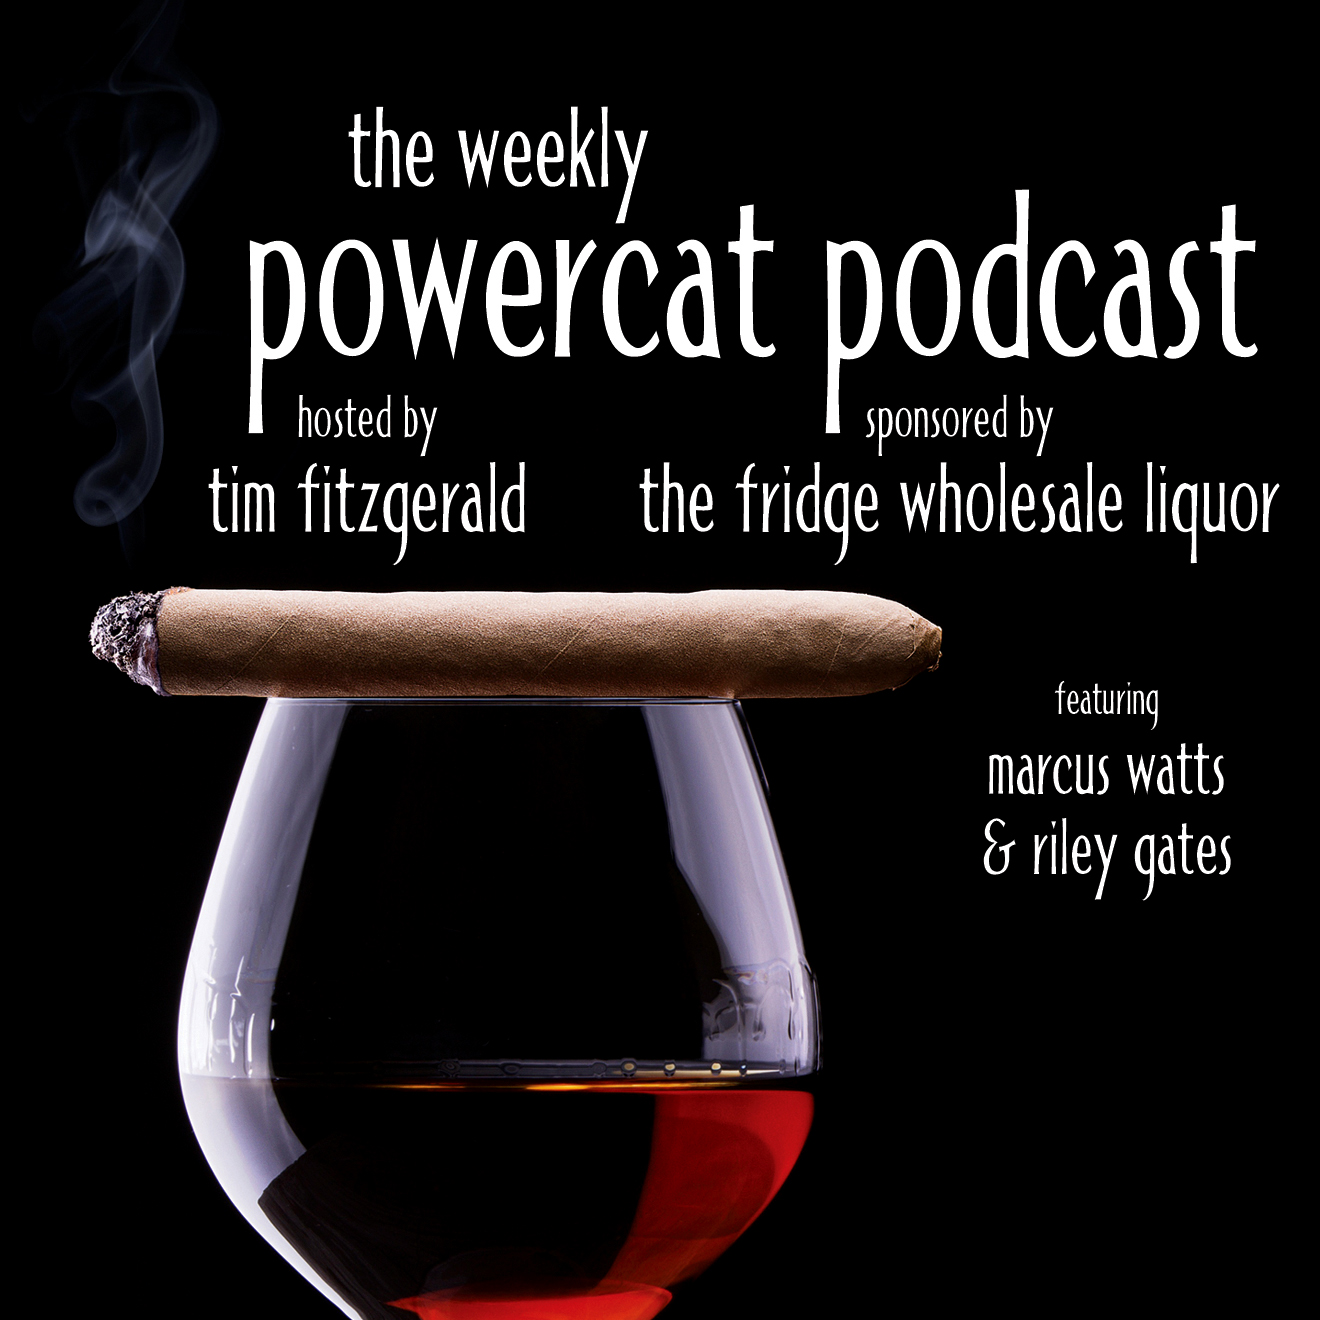 The Powercat Podcast 09.21.16